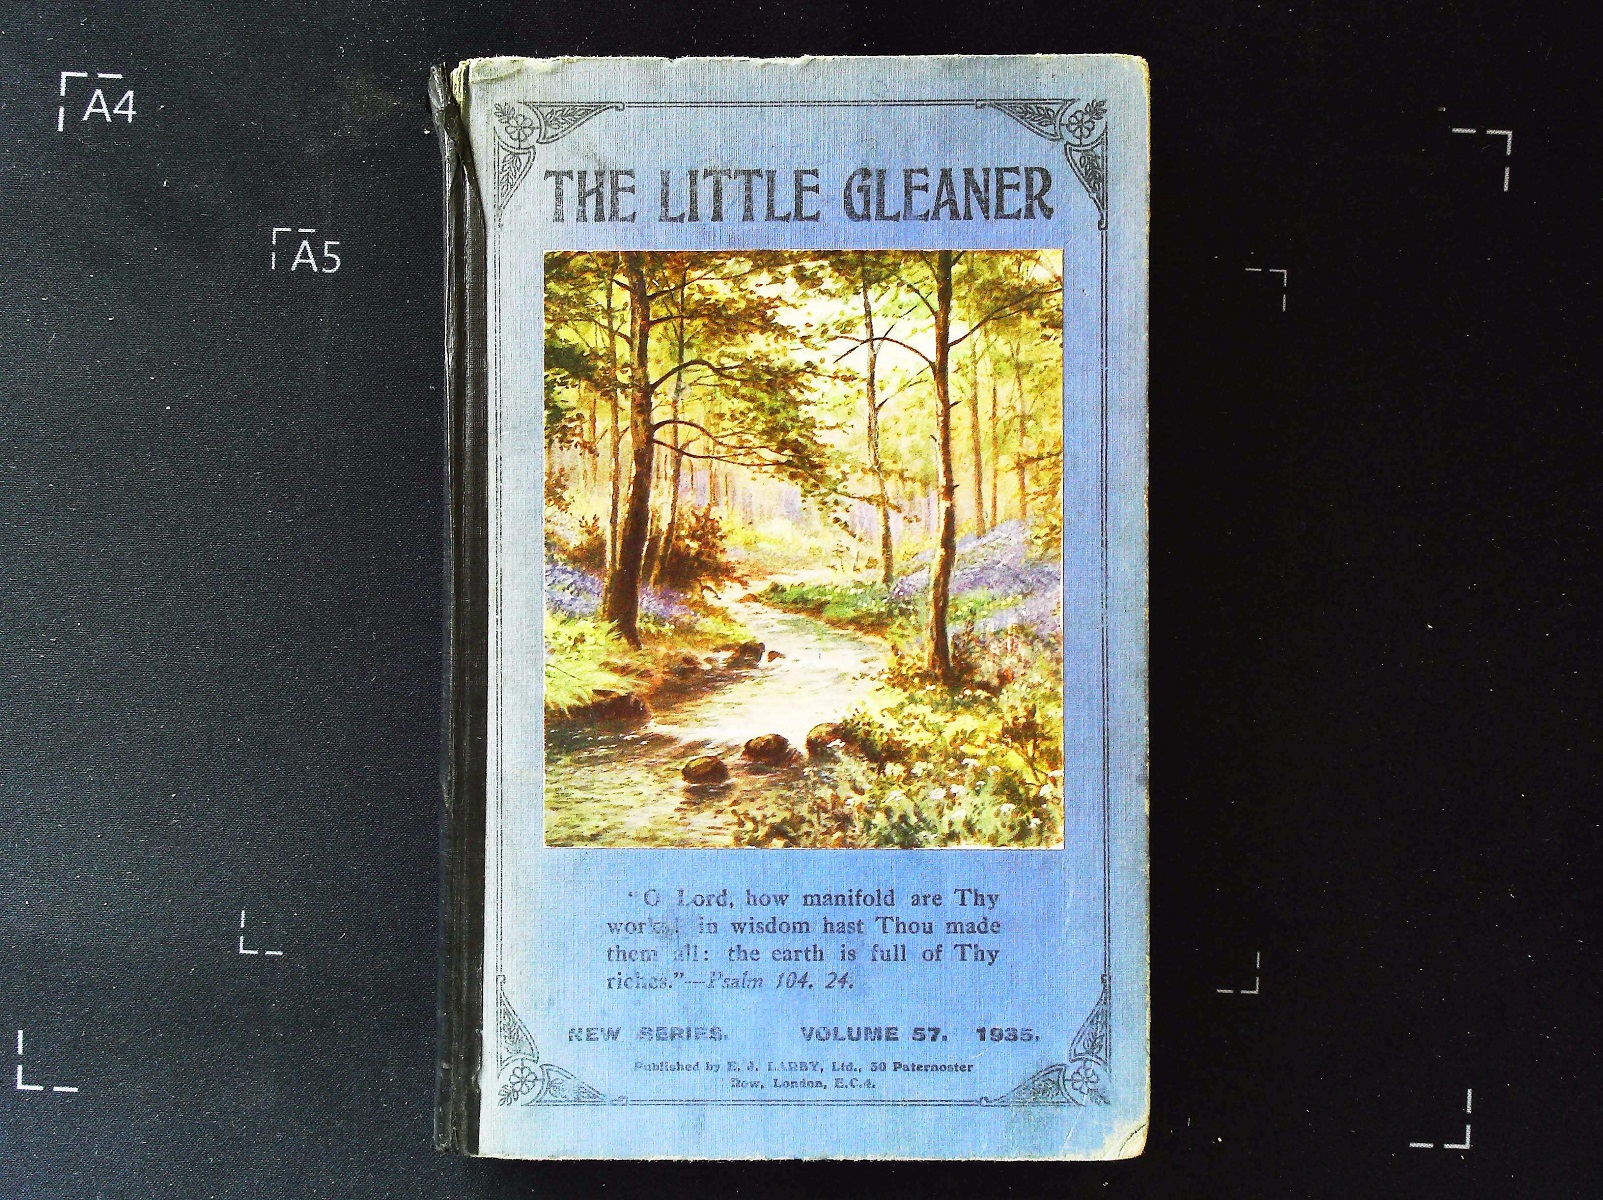 The Little Gleaner and Young People's Treasury Vol. 57 hardback book 240 pages Published 1935 E.